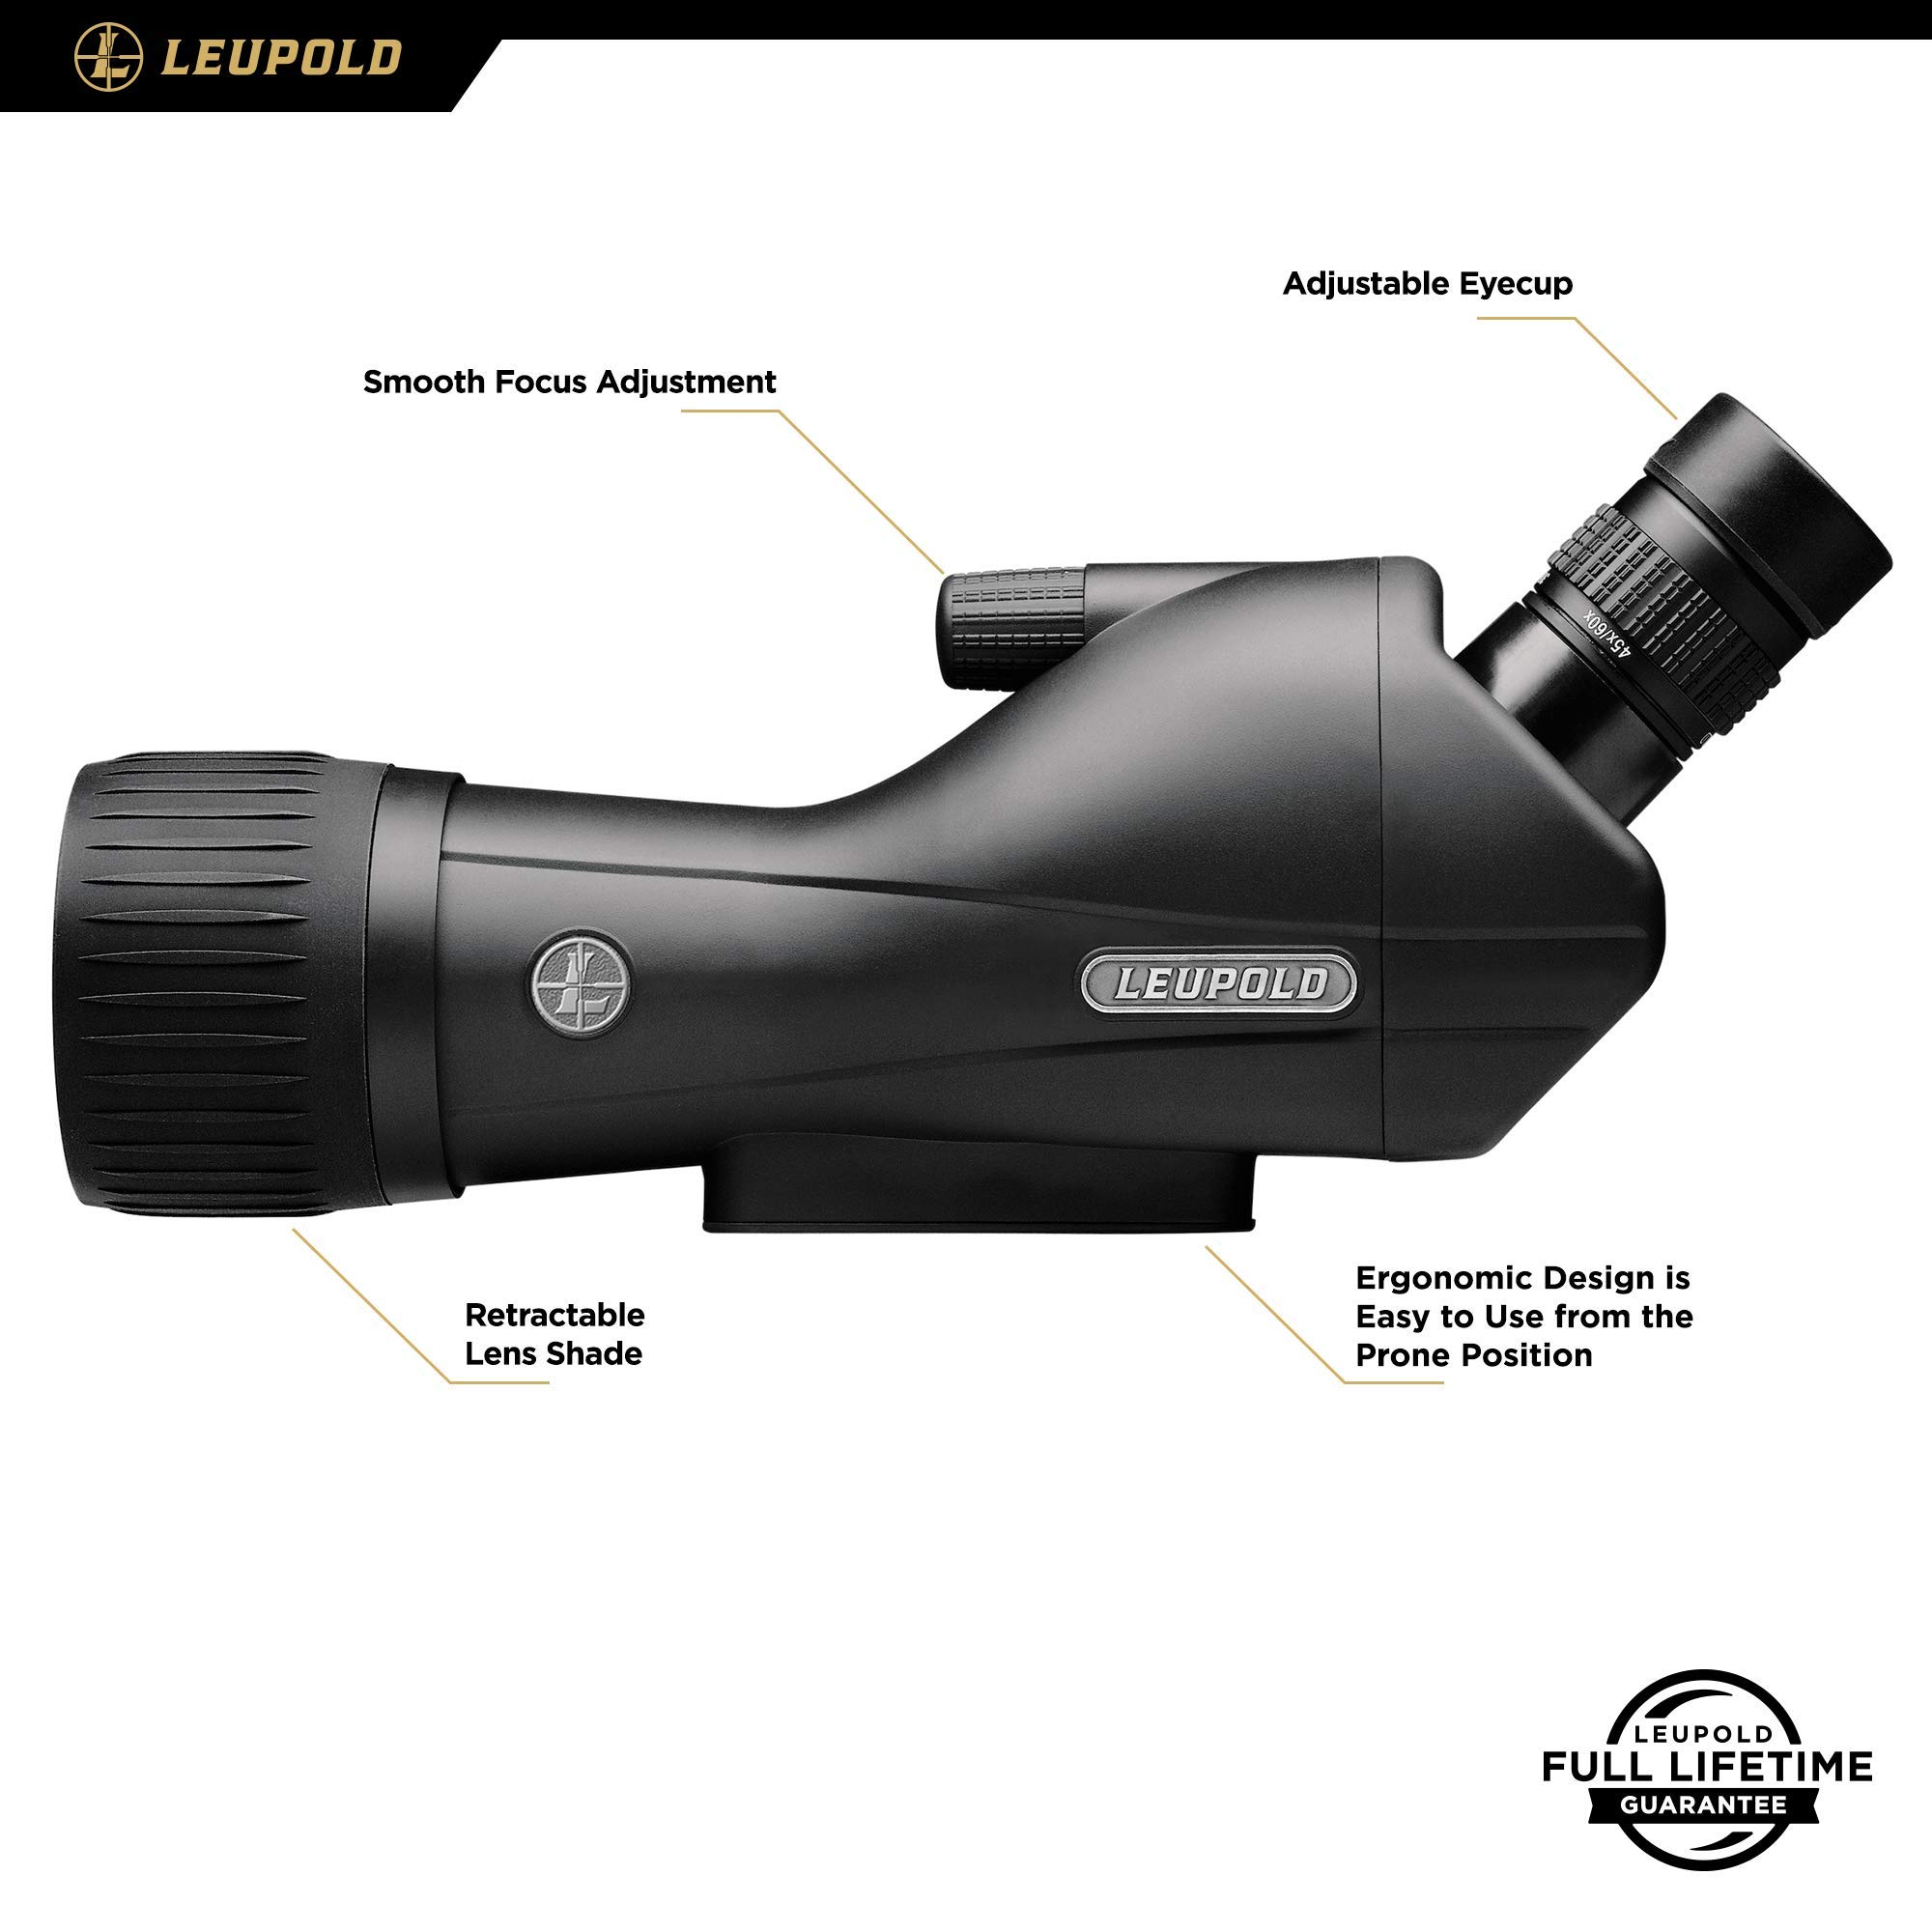 Leupold SX-1 Ventana 2 15-45x60mm Angled Spotting Scope, Black Finish by Leupold (Image #3)